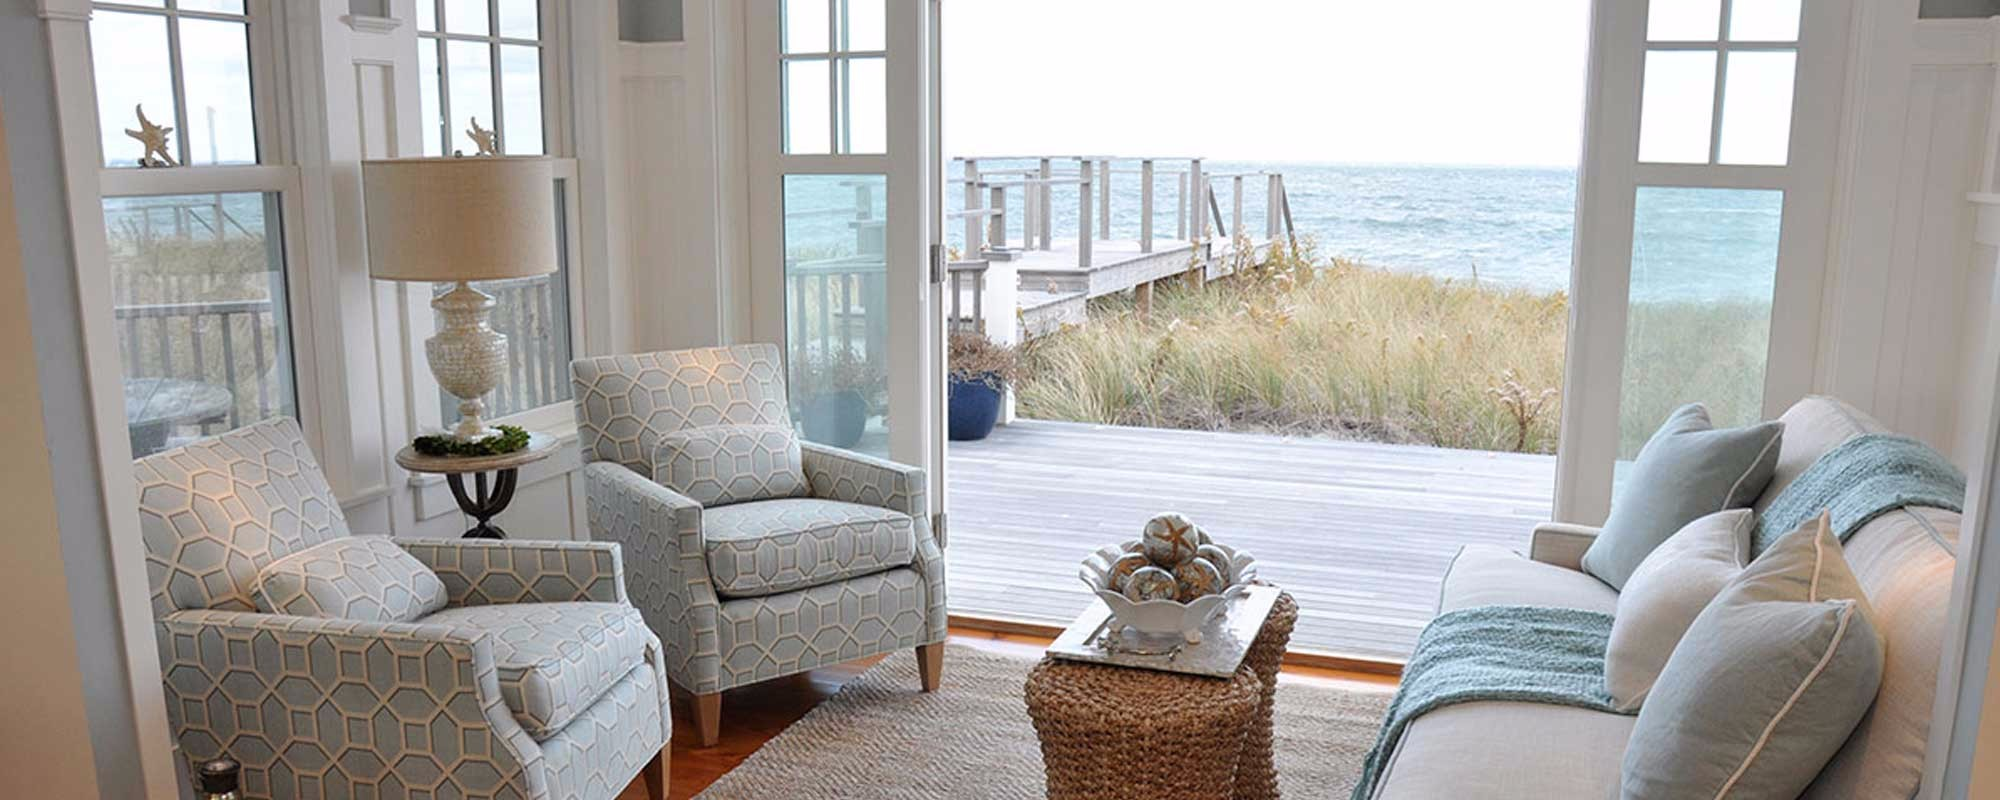 Interior design cape cod ma casabella interiors - Design house decor ...